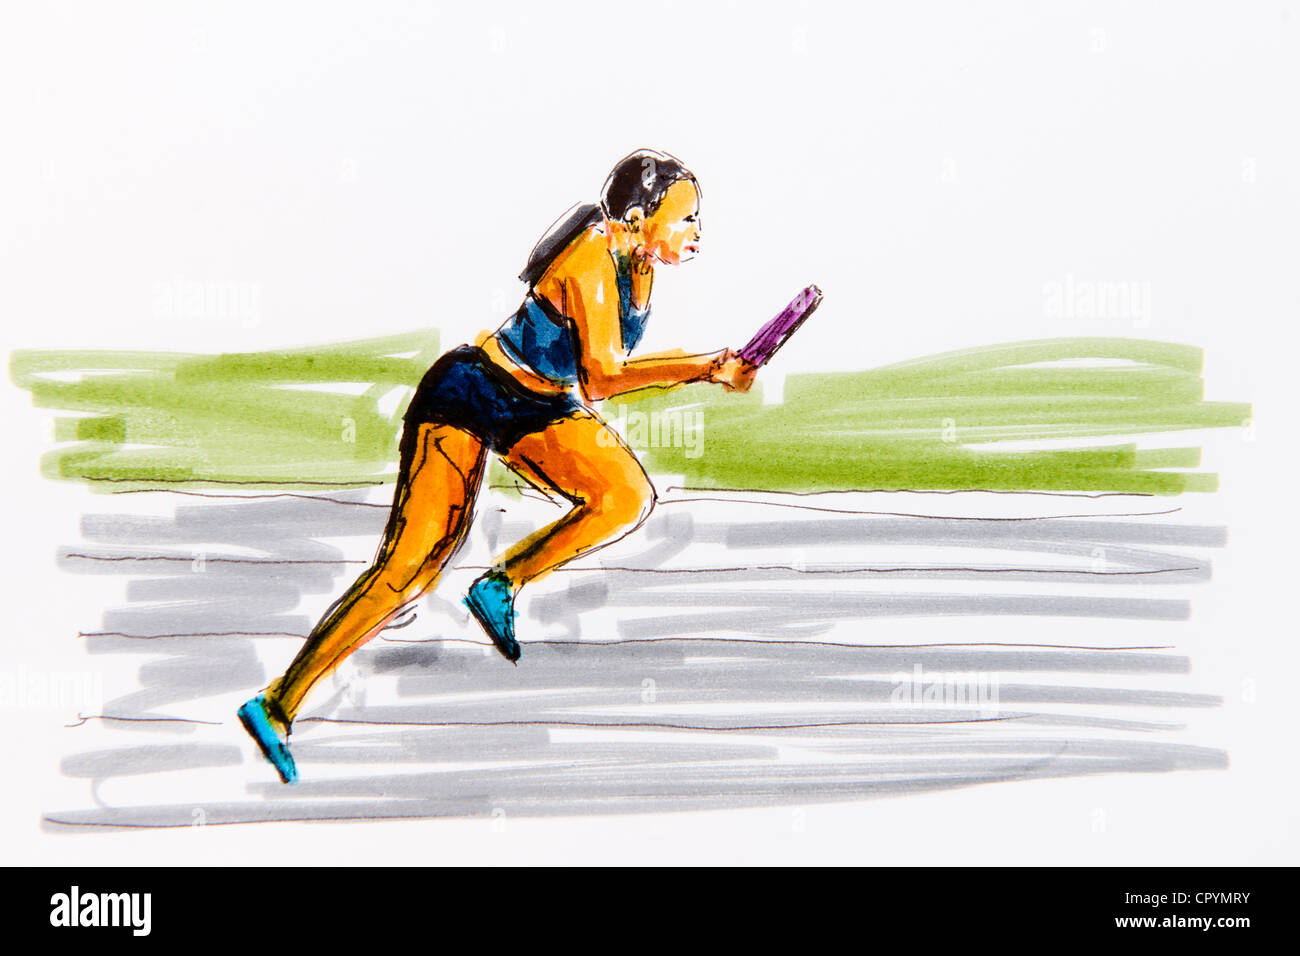 This is a picture of Impeccable Track And Field Drawing